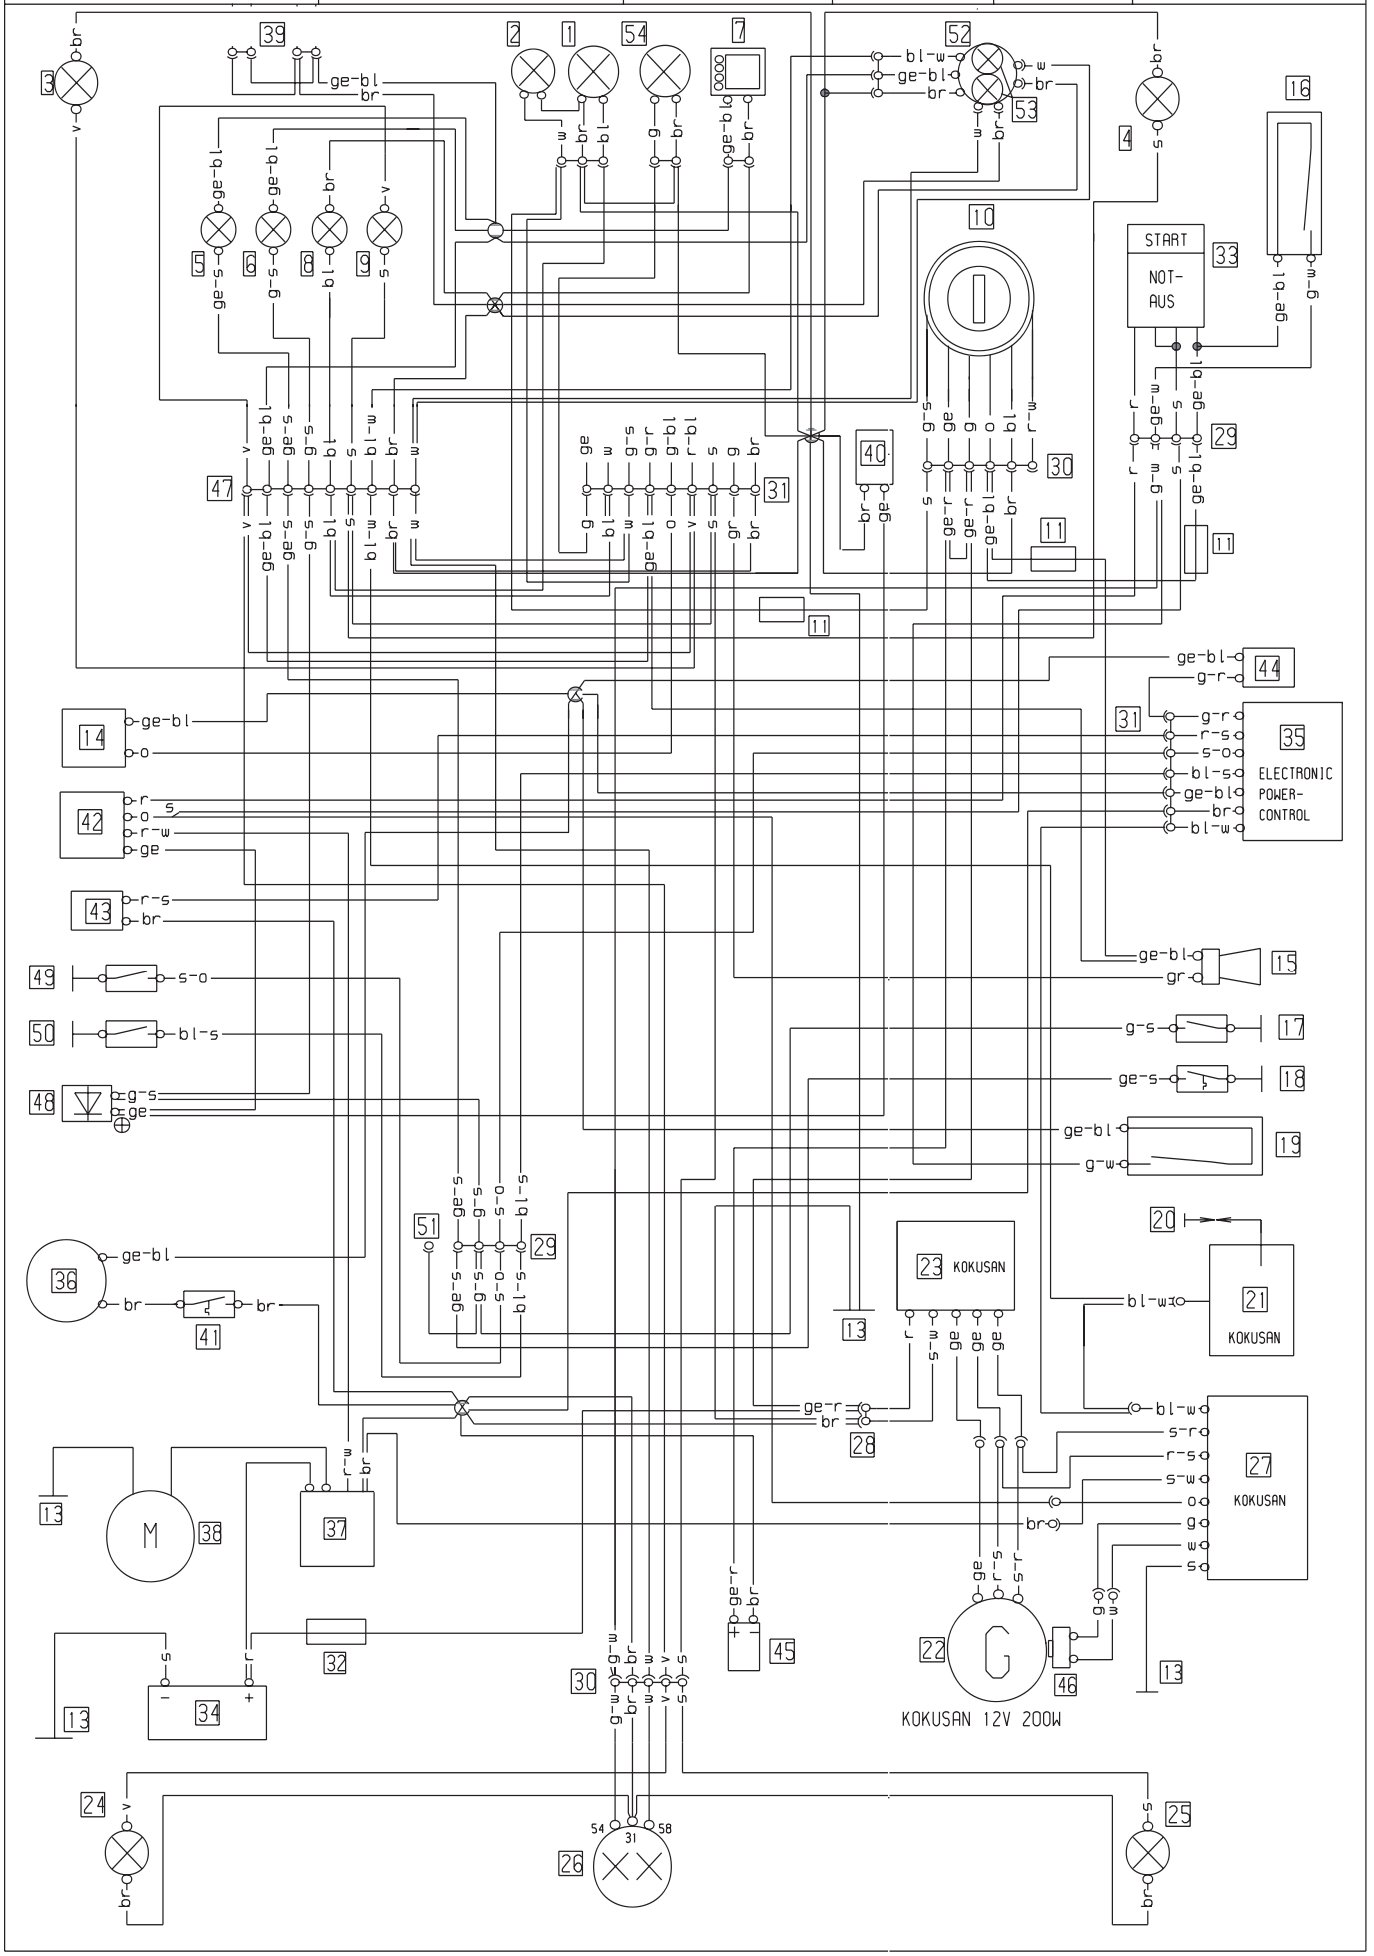 ktm wiring schematics ktm wiring diagrams cars description ktm 640 lc4 supermoto wiring diagram ktm automotive wiring diagrams on ktm lc4 wiring diagram